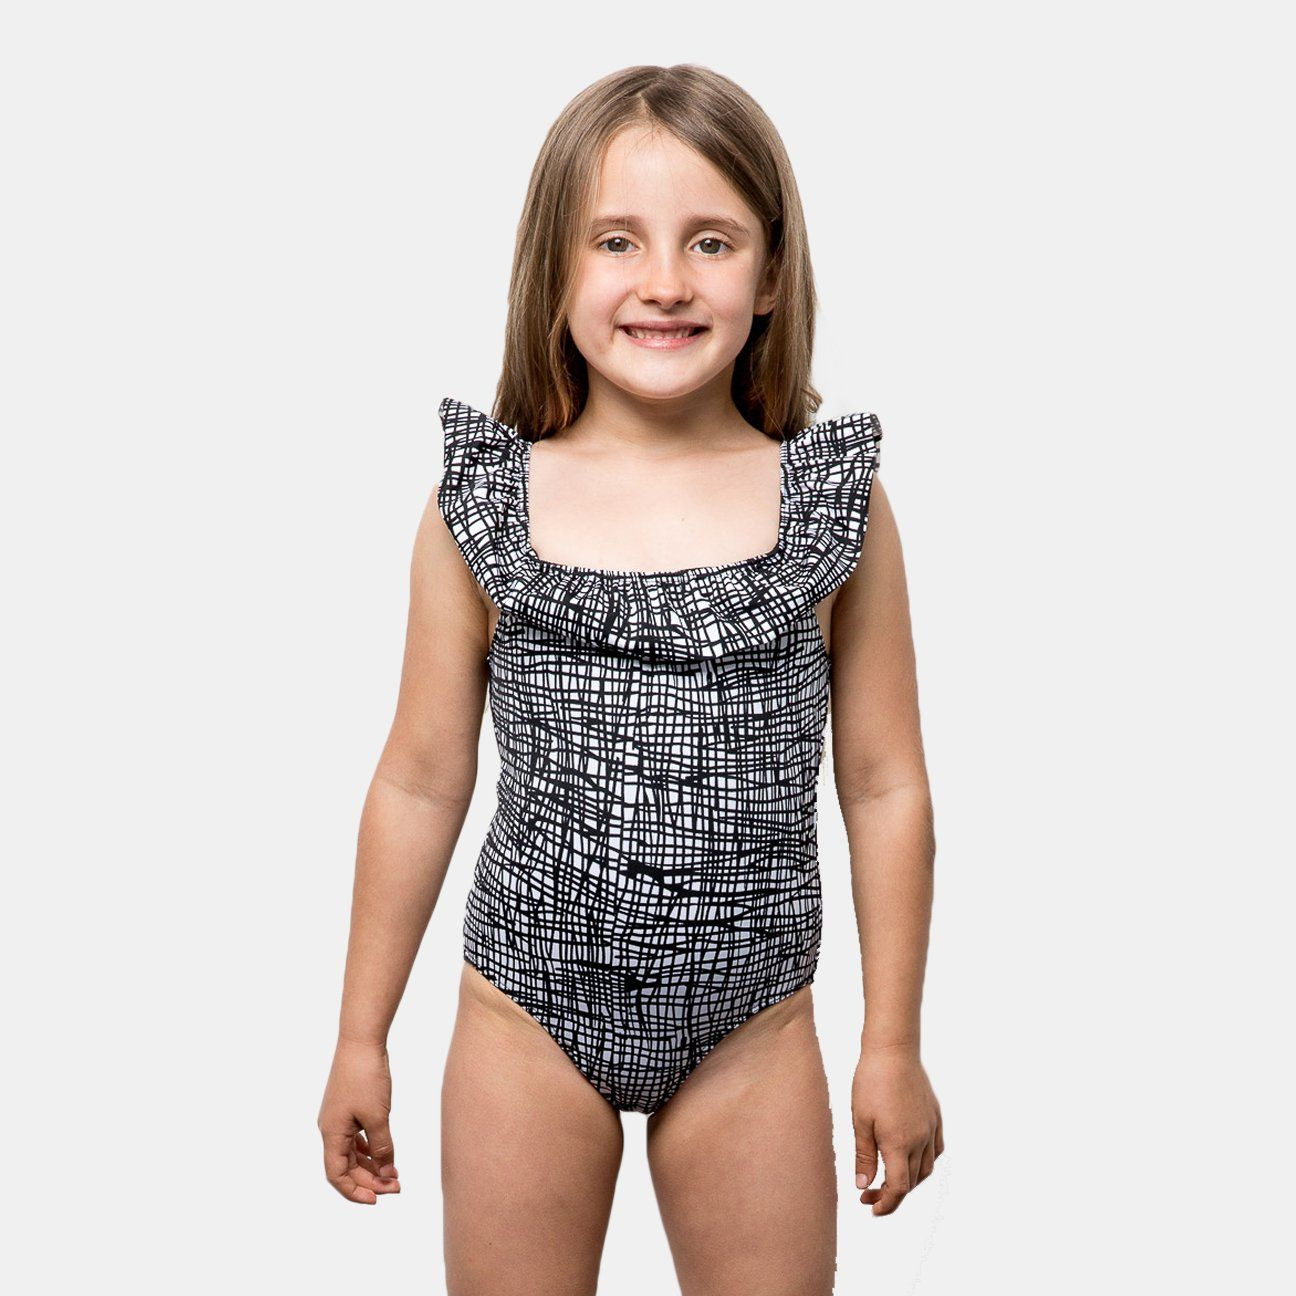 42fef5636318 One piece Fully lined Suggested fit: 5-12 years old Model wearing size 5/6  Made in Los Angeles Also available in Black. Need a different size?